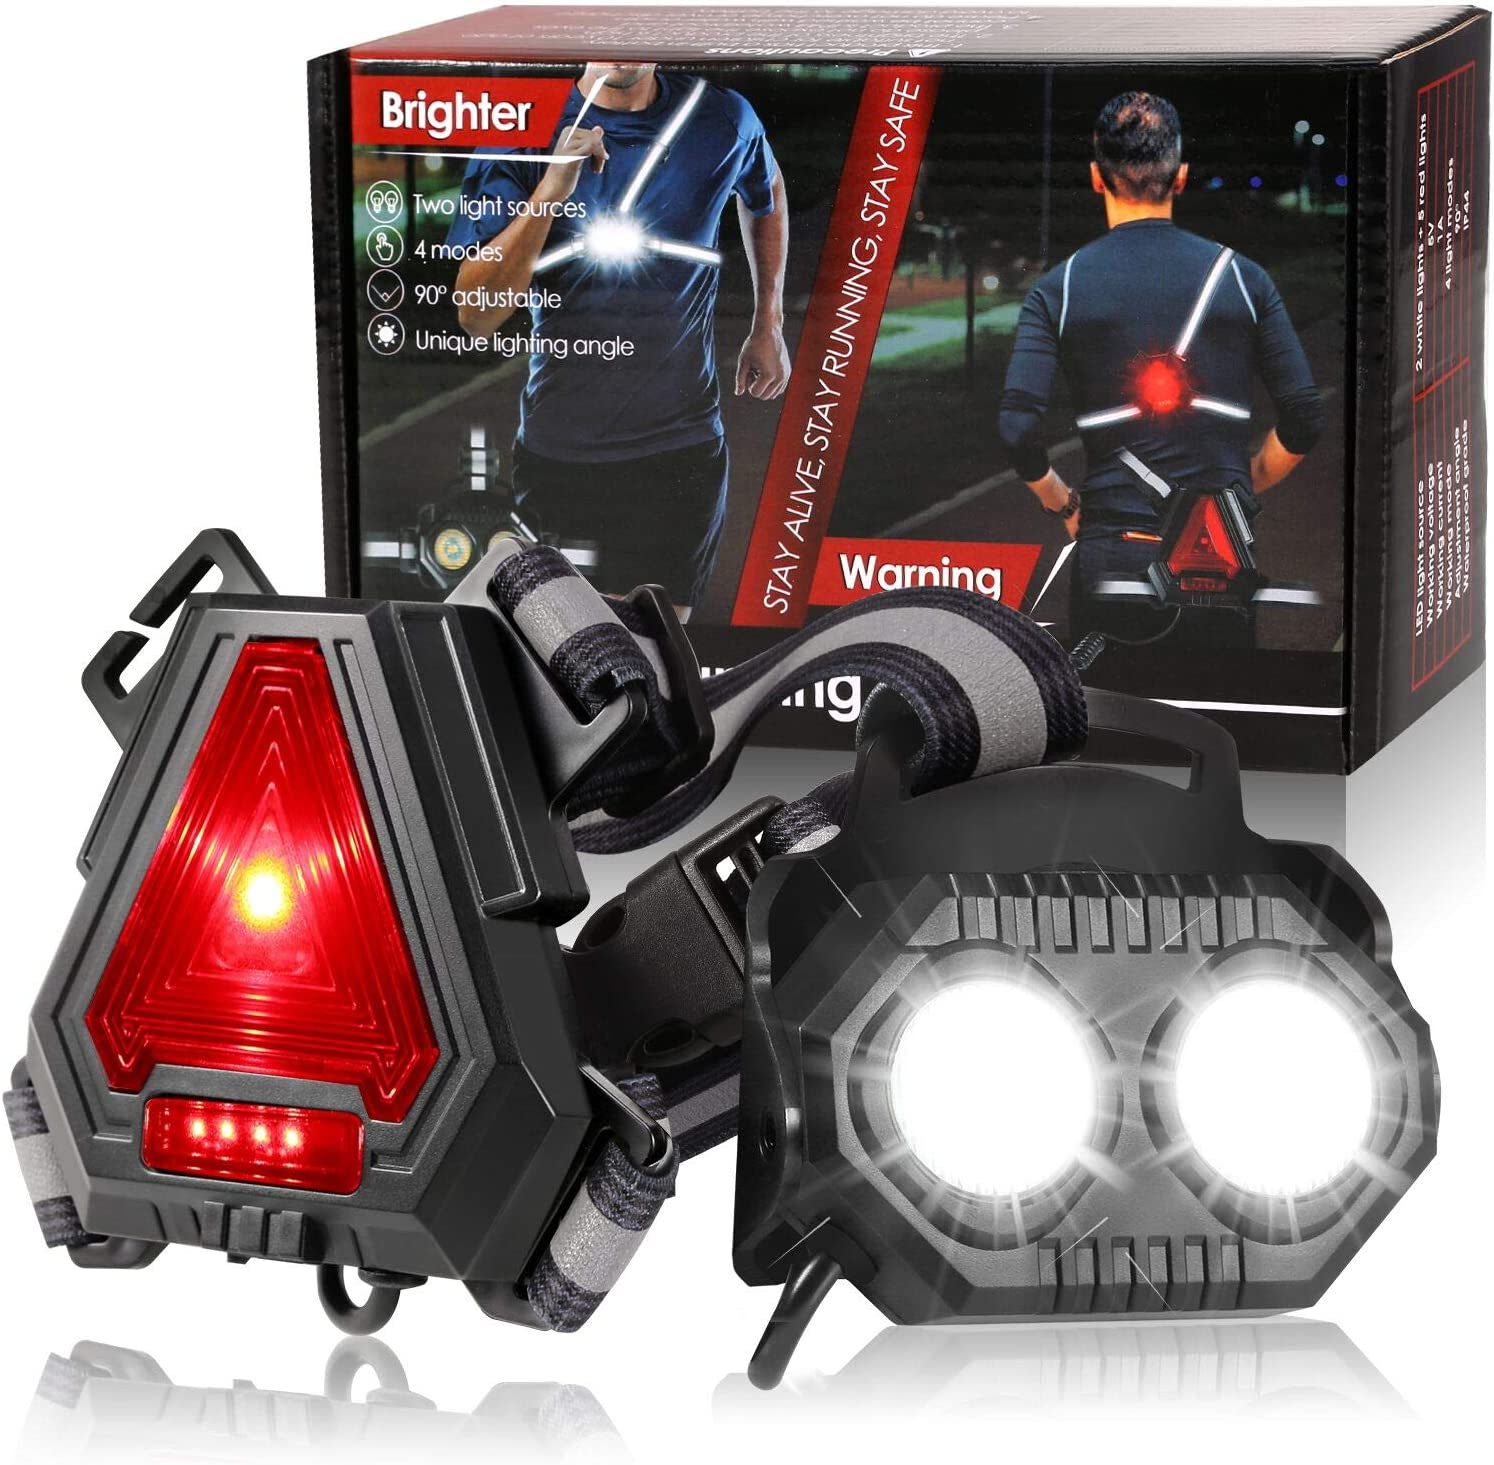 ECOWHO Max Houston Mall 41% OFF Running Lights for Runners Ni LED Chest Rechargeable USB